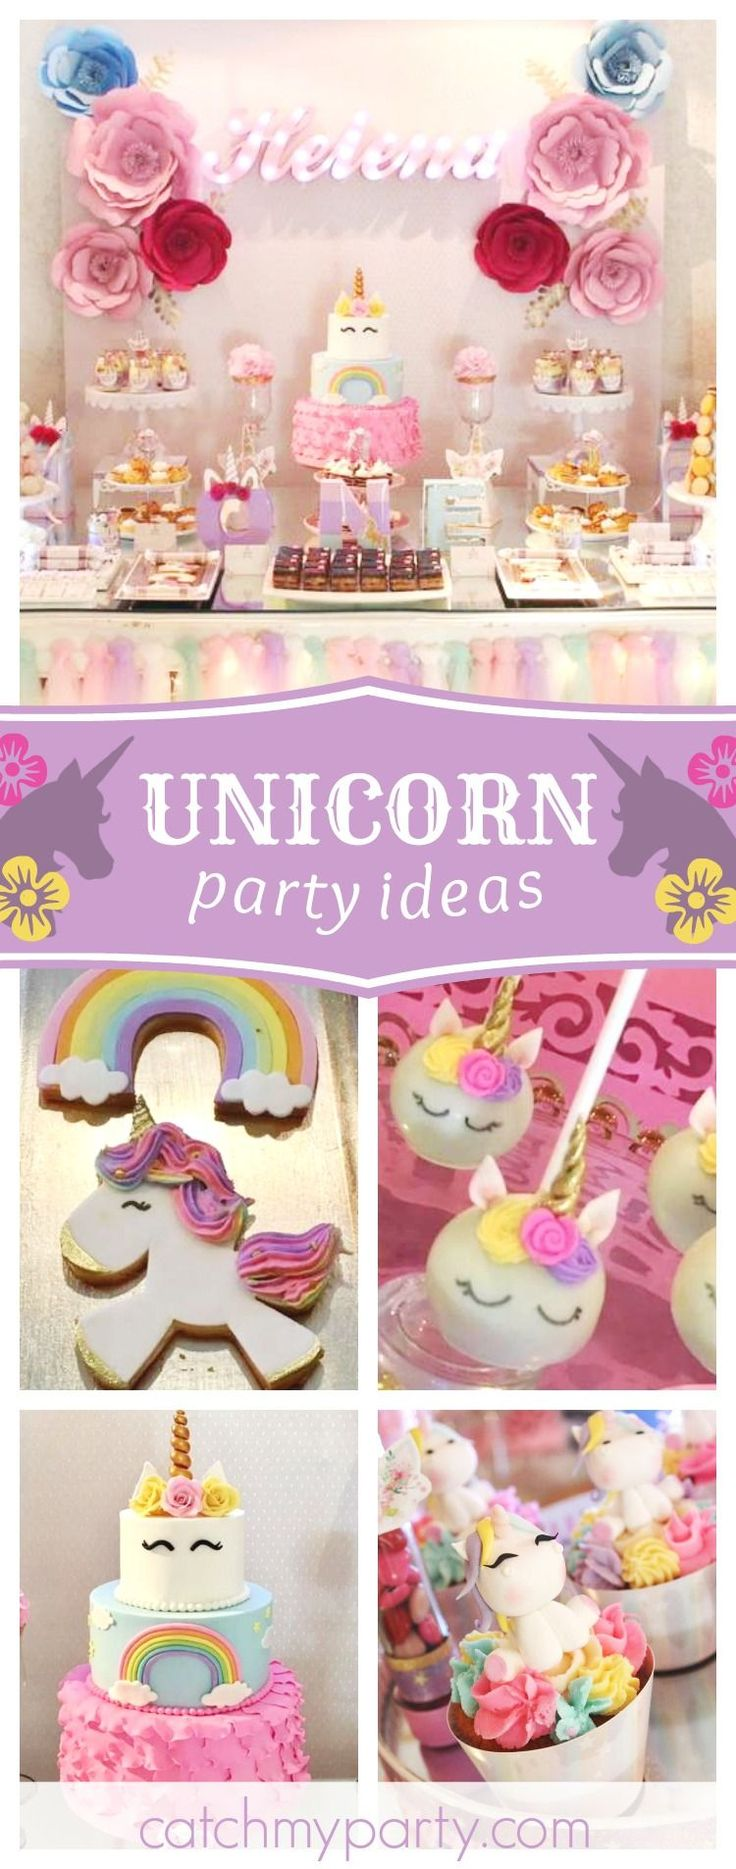 Take a look at this magical Unicorn birthday party! The birthday cake is amazing!! See more party ideas and share yours at CatchMyParty.com #partyideas #catchmyparty #unicorn #girlbirthday